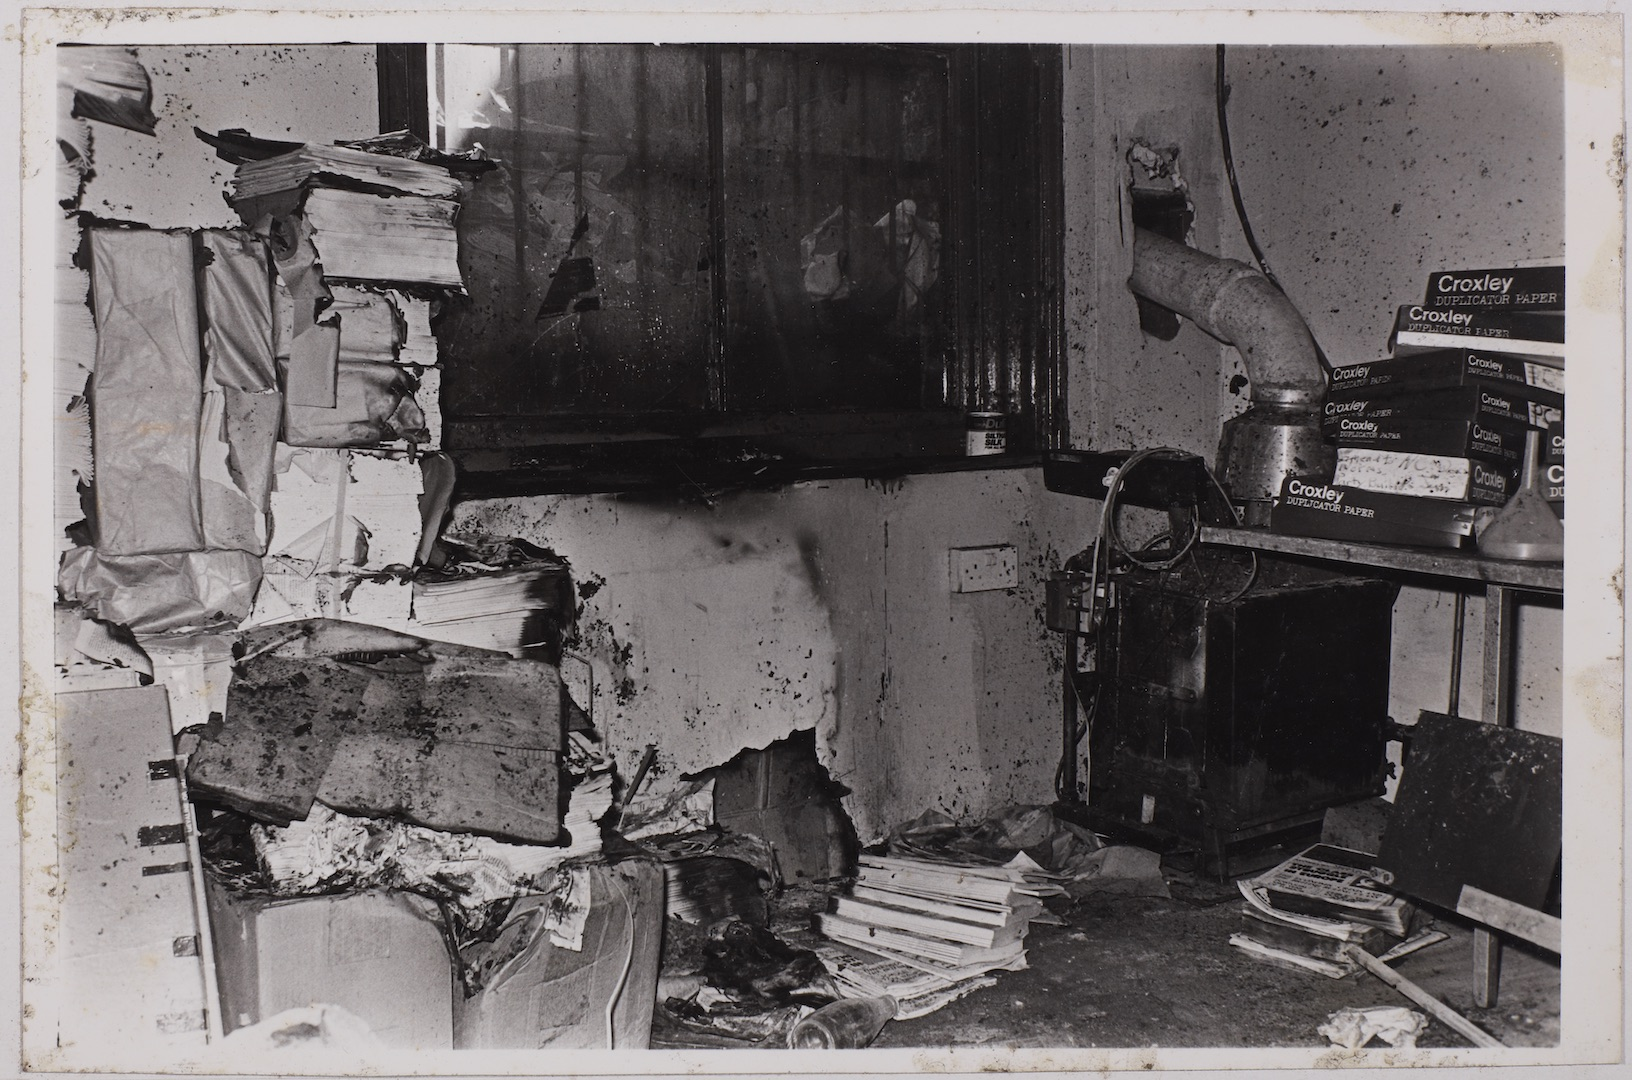 11 'The Other Bookshop Burned'. 11th April 1978. Huntley Archives at London Metropolitan Archives_Ar